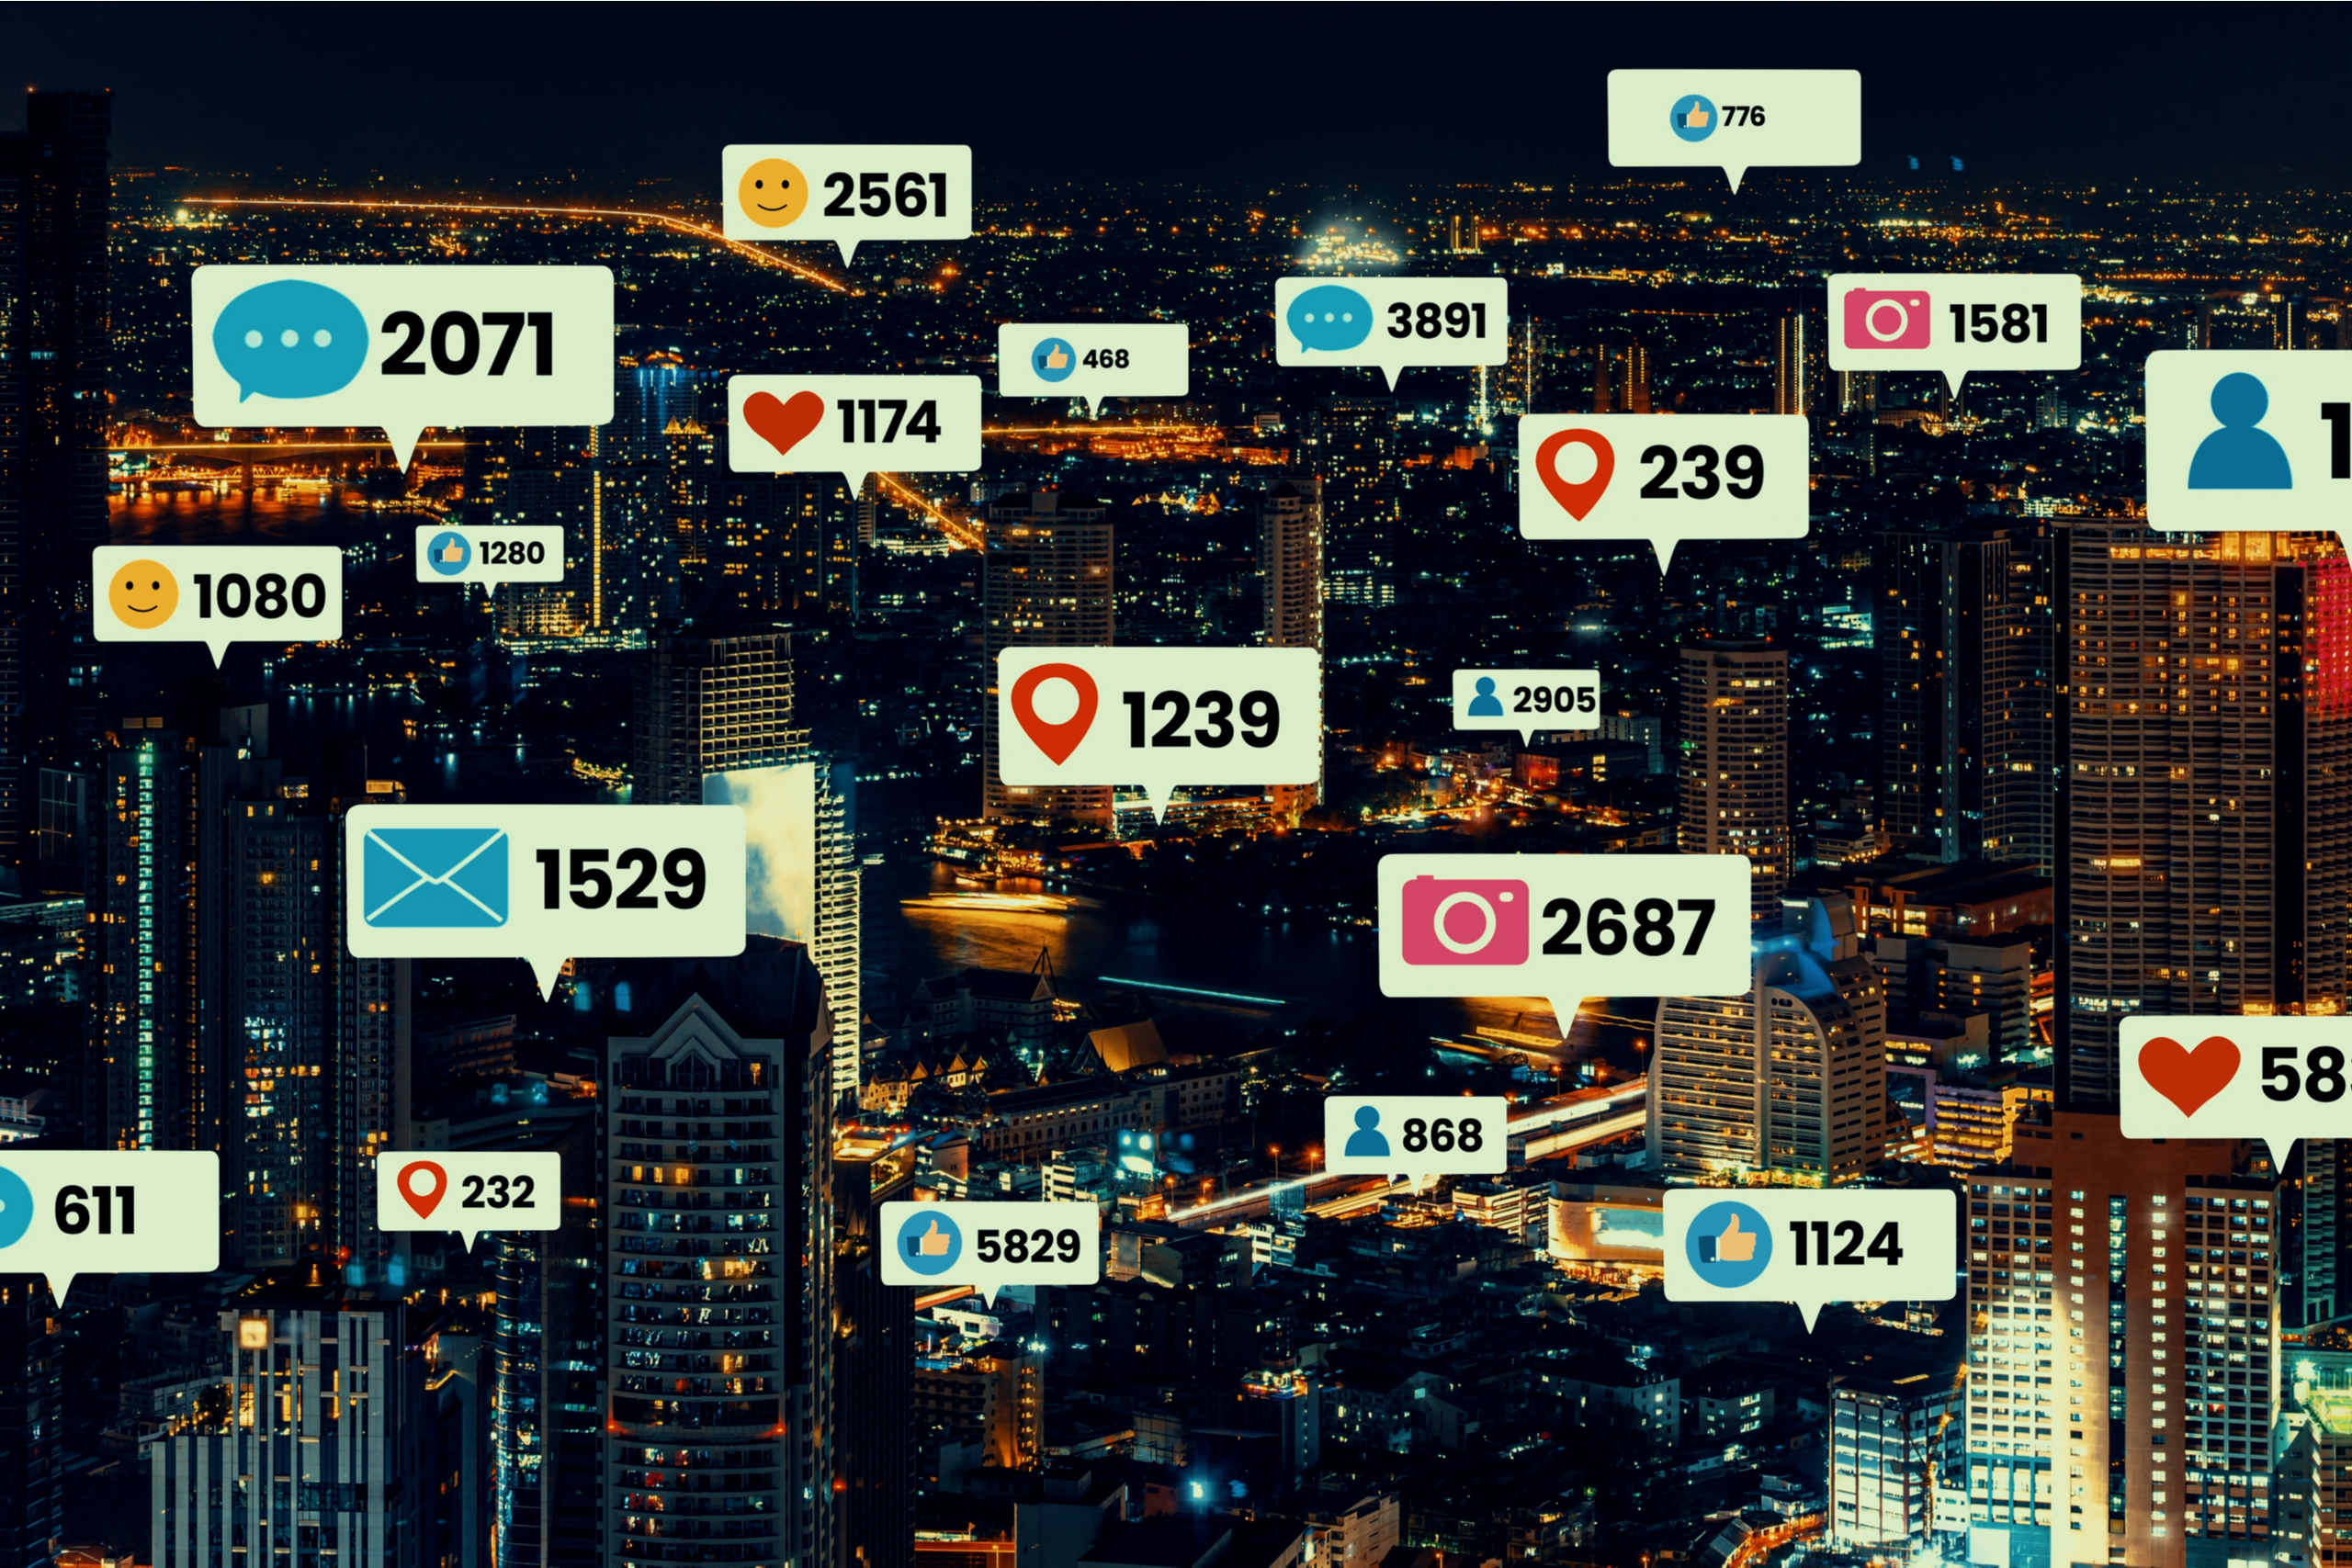 How to Increase Your Social Media Engagement